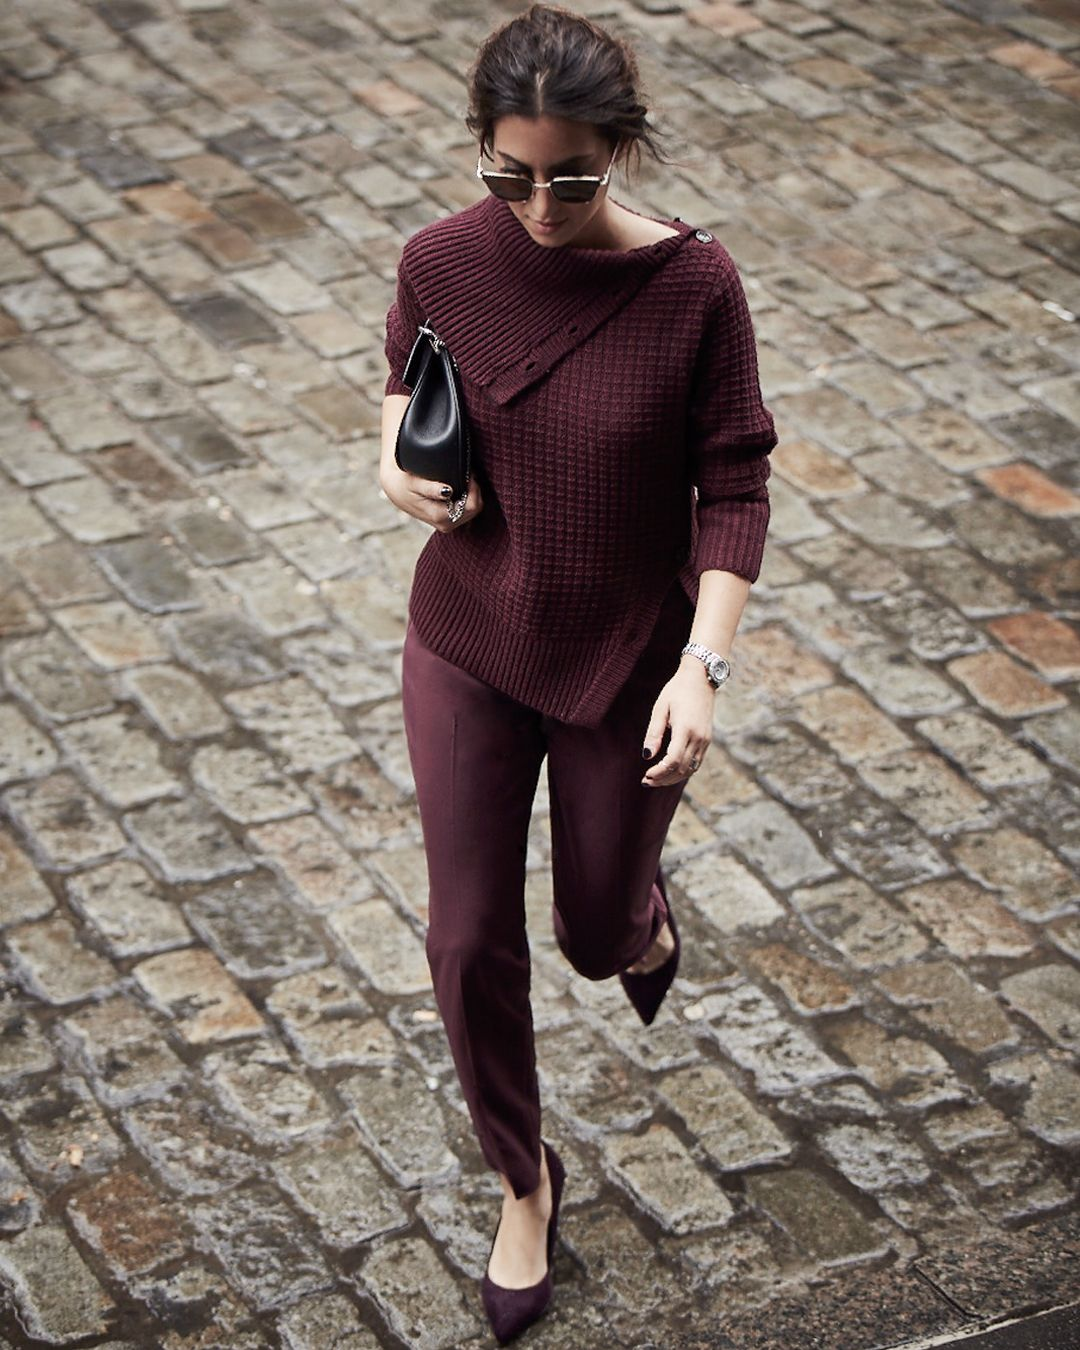 """<p>An all-one-color outfit is the quickest road to chic.May we suggest trying outthe color of the season: a rich, jewel-like burgundy.</p><p><br> </p><p><em data-redactor-tag=""""em"""">Canvas by Lands' End Women's 3/4 Sleeve Turtleneck Sweater, $125, <a href=""""http://www.landsend.com/products/womens-34-sleeve-turtleneck-sweater/id_302314?sku_0=::DBO"""" target=""""_blank"""">landsend.com</a>;<em data-redactor-tag=""""em"""">Canvas by Lands' End Women's</em><span class=""""redactor-invisible-space"""" data-verified=""""redactor"""" data-redactor-tag=""""span"""" data-redactor-class=""""redactor-invisible-space""""></span>Slim Ankle Pants, $95, <a href=""""http://www.landsend.com/products/womens-slim-ankle-pants/id_302352?sku_0=::DBO"""" target=""""_blank"""">landsend.com</a>;<em data-redactor-tag=""""em"""">Canvas by Lands' End Women's</em><span class=""""redactor-invisible-space"""" data-verified=""""redactor"""" data-redactor-tag=""""span"""" data-redactor-class=""""redactor-invisible-space""""></span>Heeled Pointed Toe Pumps, $110, <a href=""""http://www.landsend.com/products/womens-heeled-pointed-toe-pumps/id_302891?sku_0=::BLA"""" target=""""_blank"""">landsend.com</a></em></p>"""